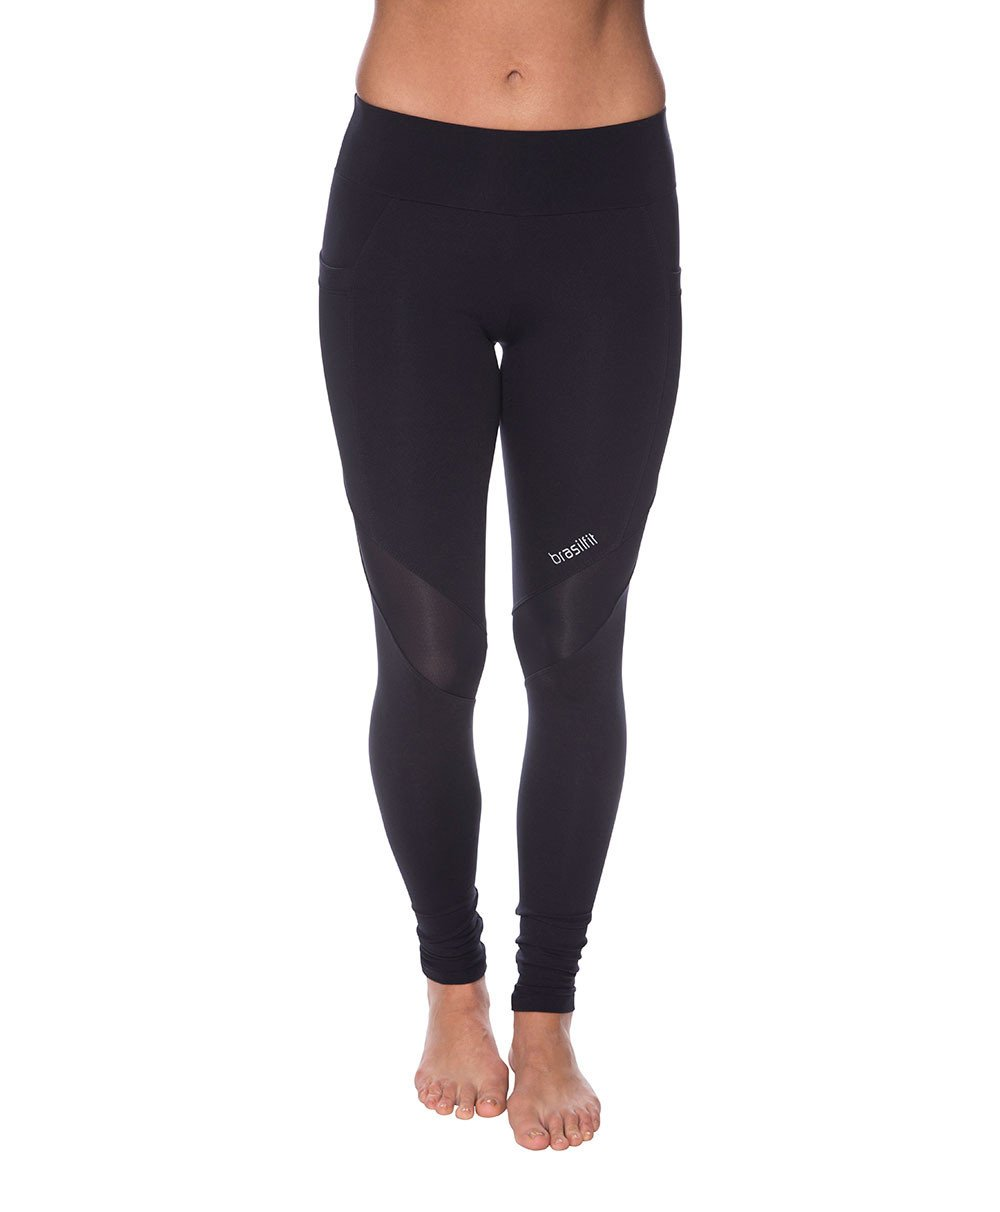 Side view product image for Brasilfit Versao full length activewear leggings. Osaka leggings are made from our premium Supplex fabric and contain mesh inserts with pocket. Versao leggings are part of our essentials and basics activewear collection that is focused on high compression, performance activewear.